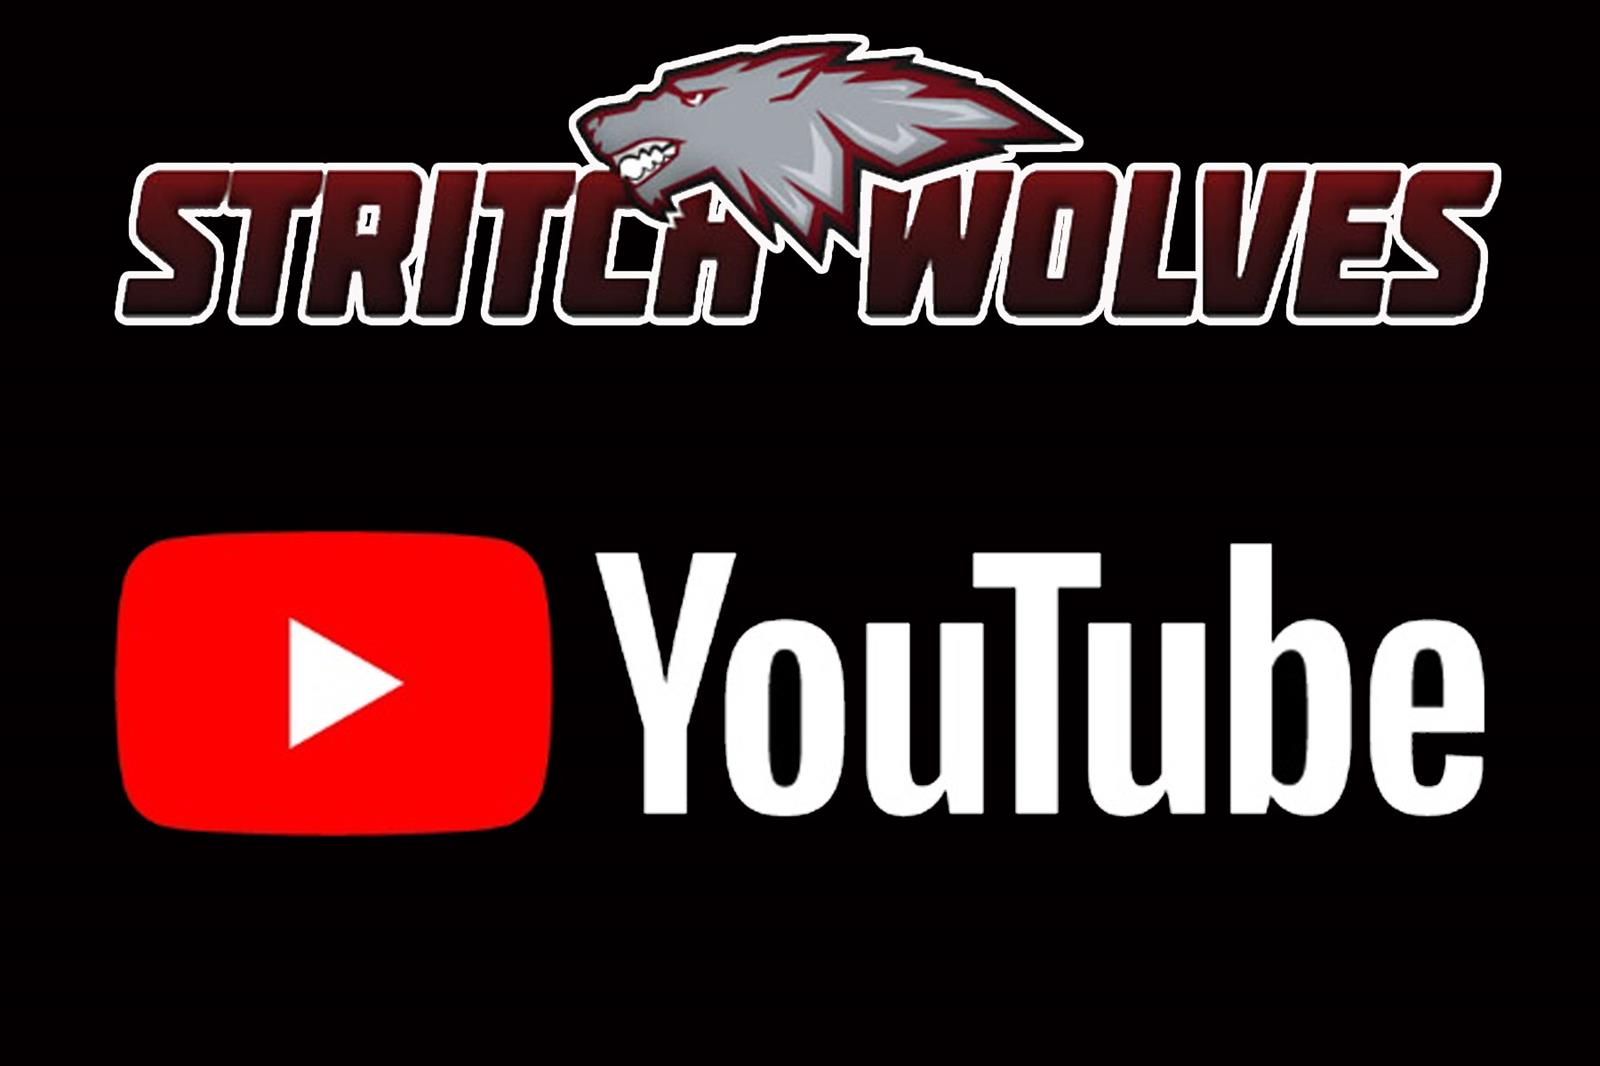 Athletics Enhances Youtube Channel With Live Stream